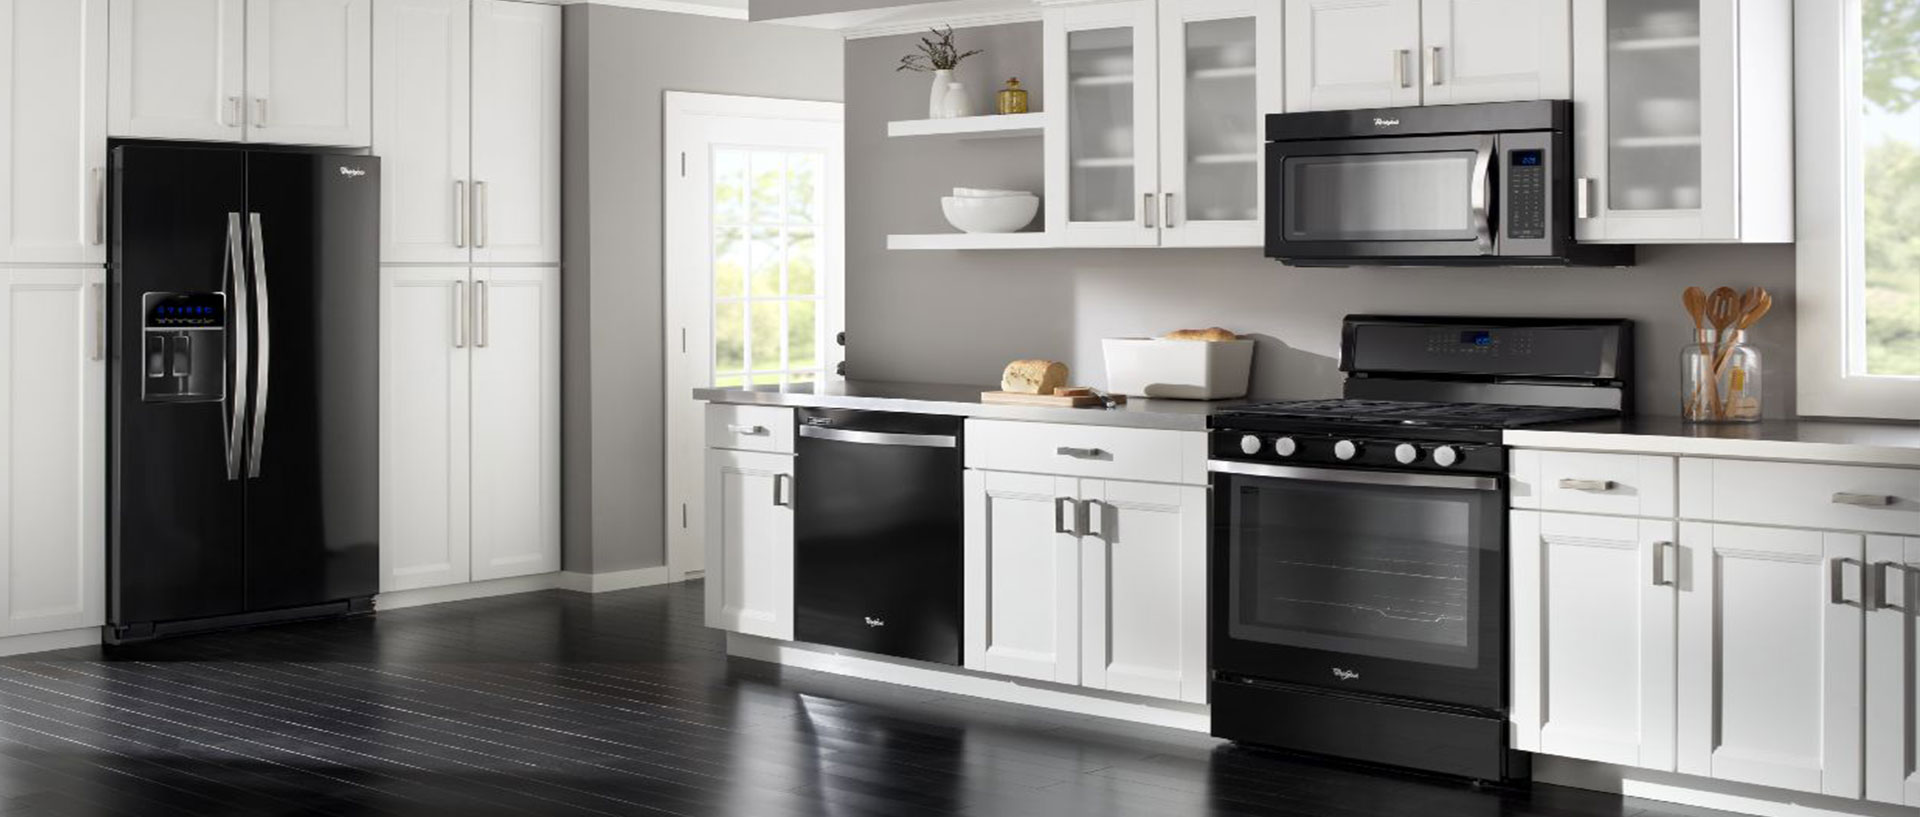 The Best Appliance Finishes Of 2017 Appliances Connection